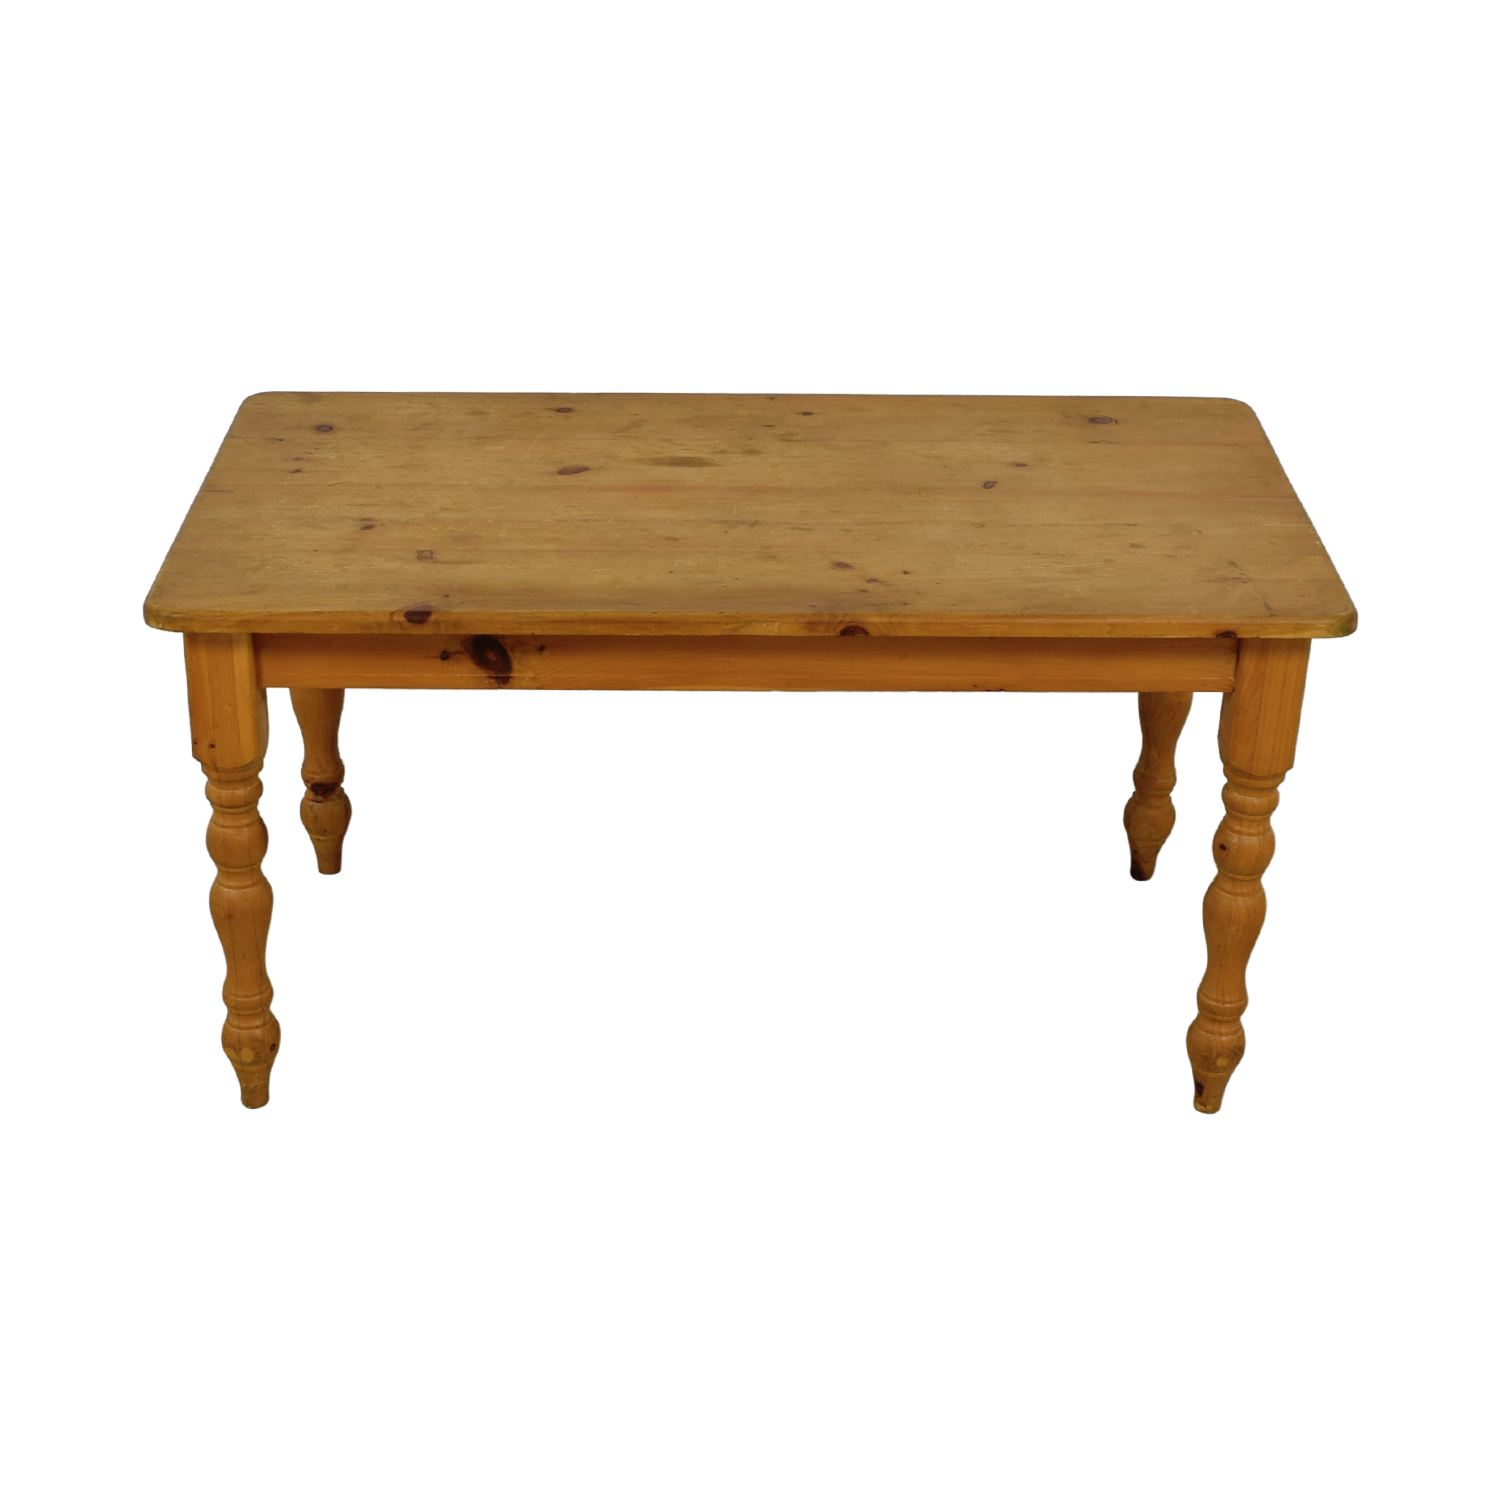 Rustic Pine Wood Farmhouse Table Beige